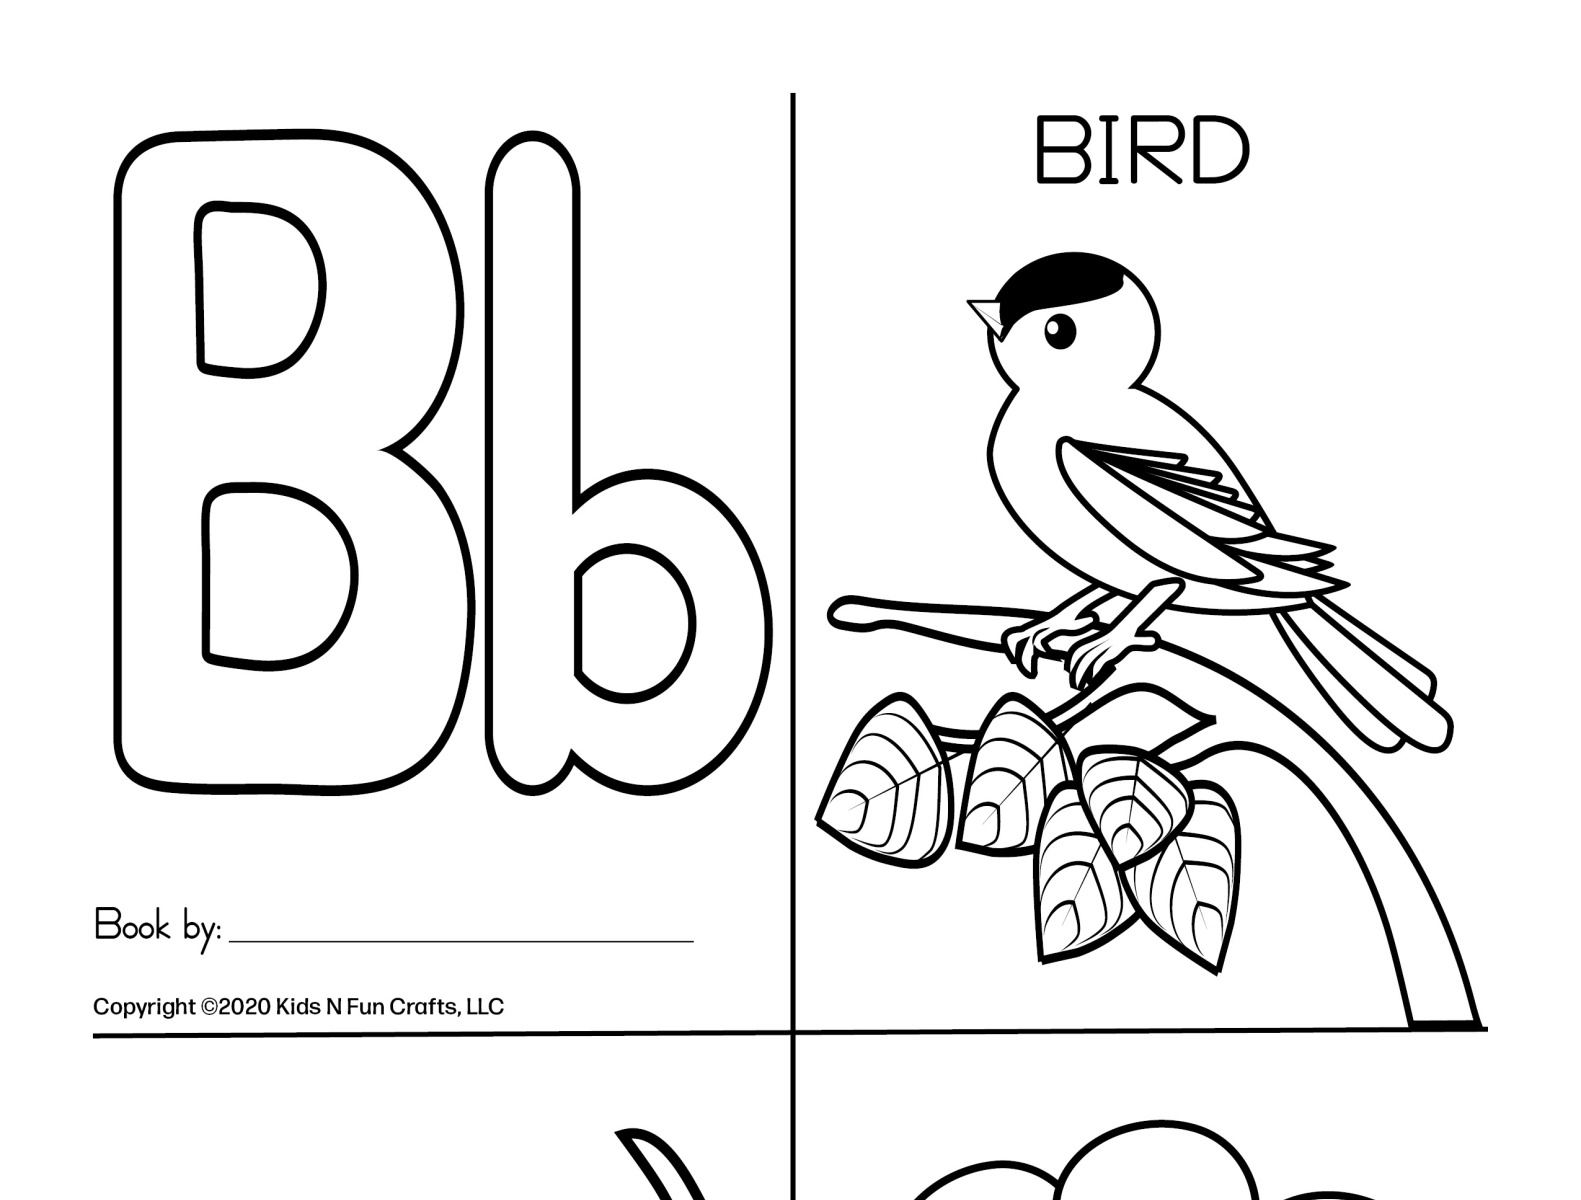 Alphabet Book Coloring Pages By Deborah Goschy On Dribbble